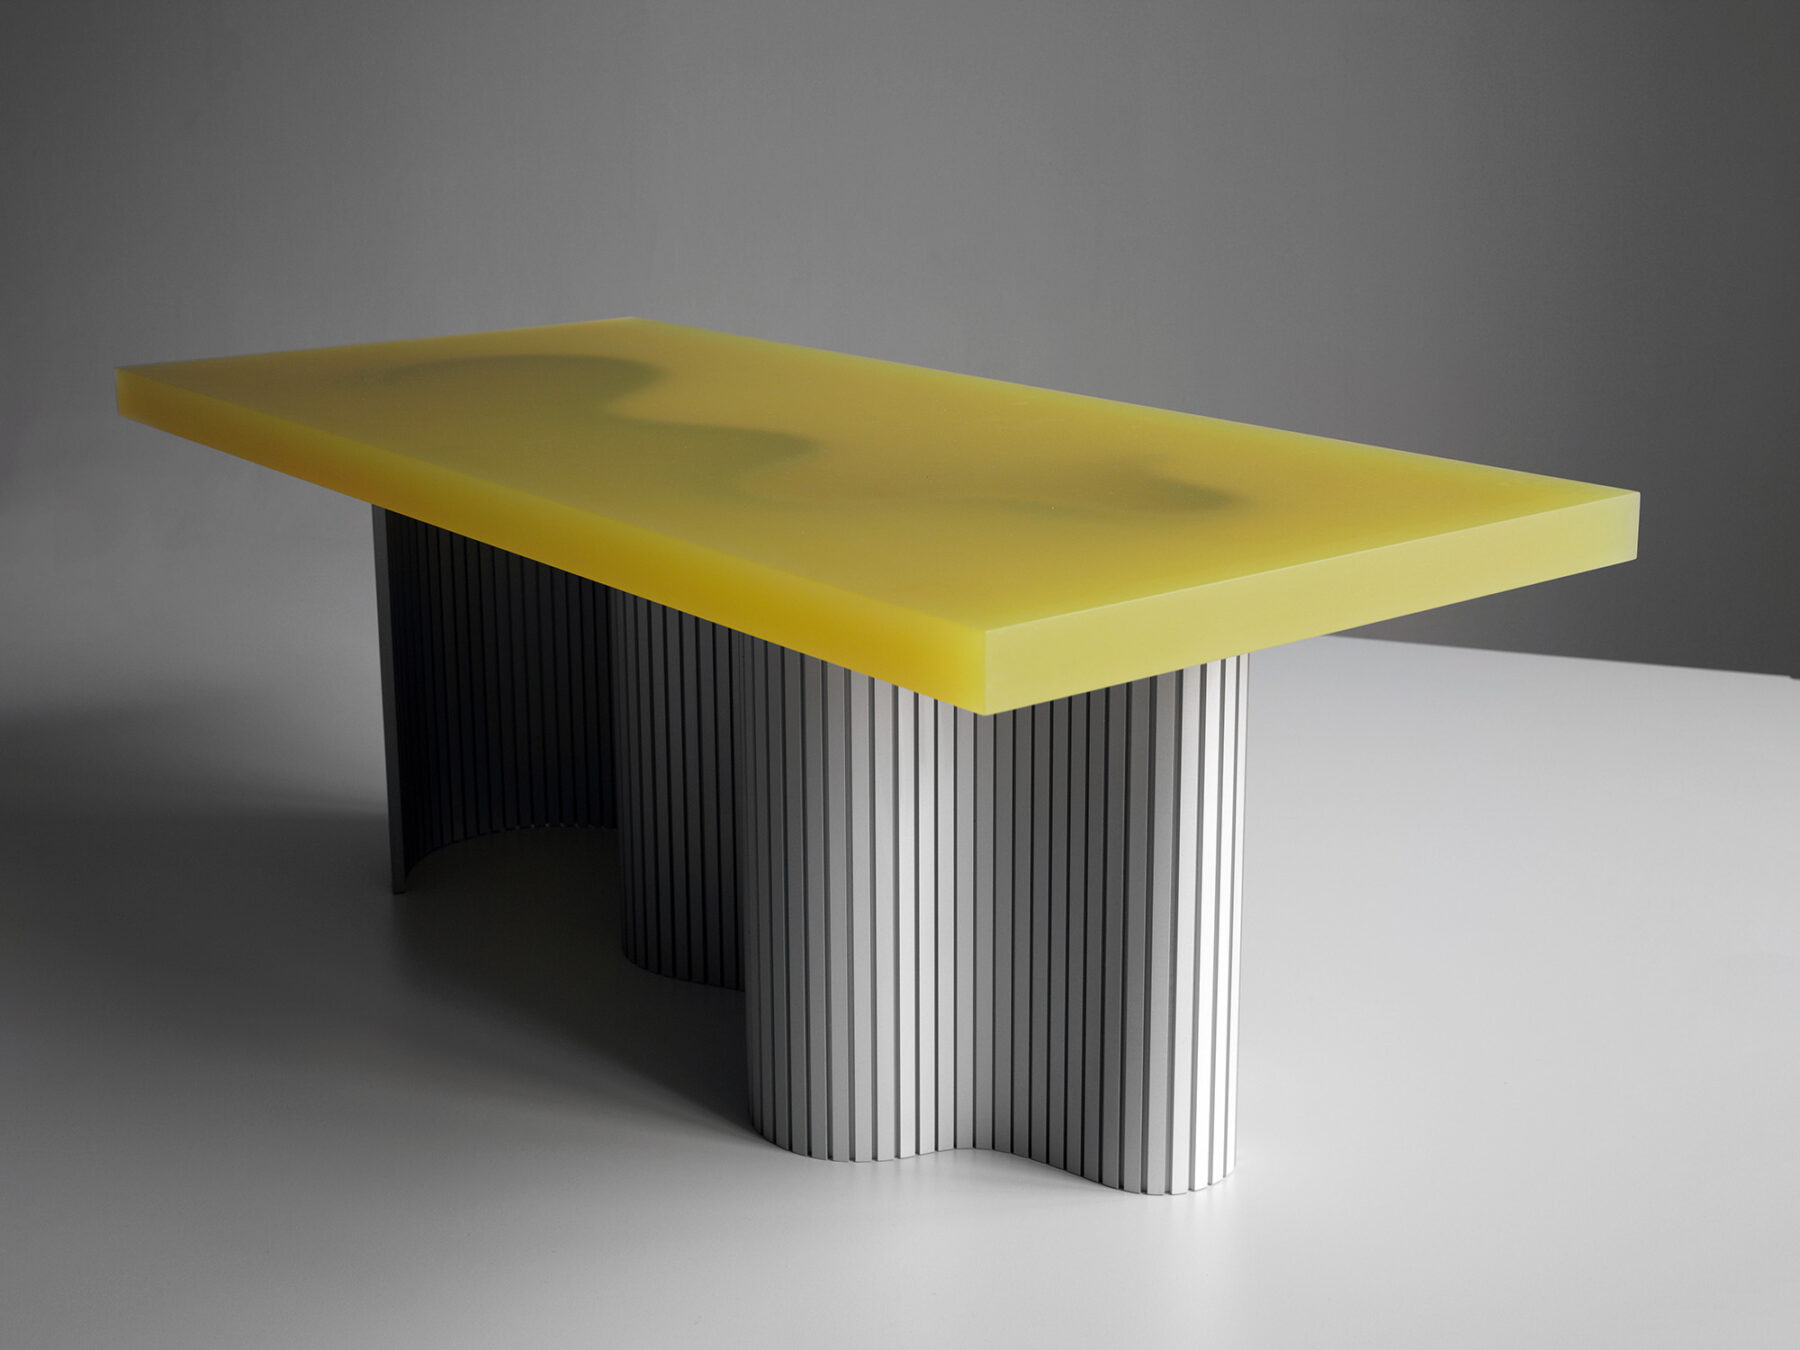 Spine_Table_01_Low